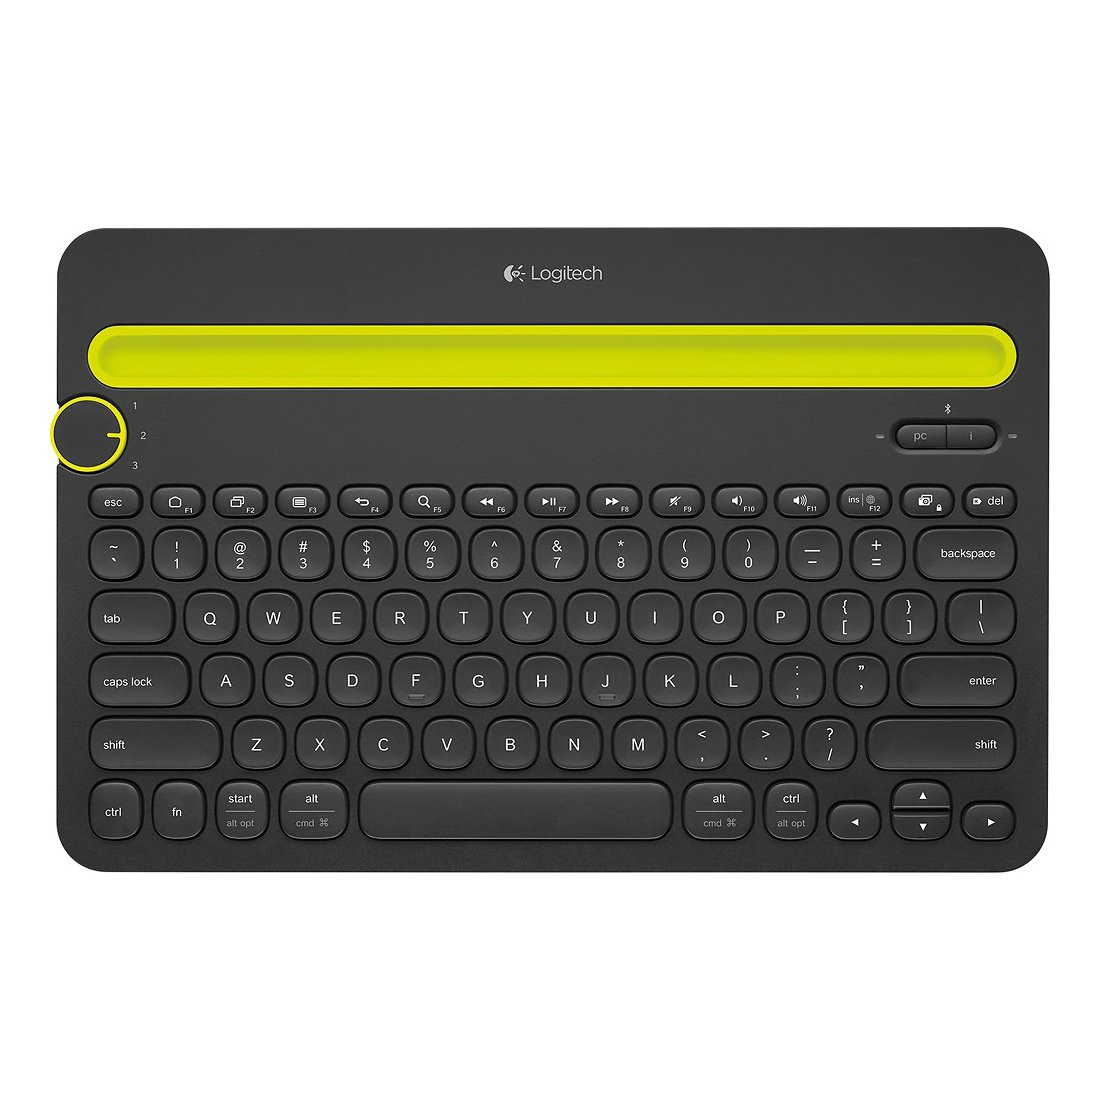 Logitech Bluetooth Multi-Device Keyboard K480 for Computers. Tablets and Smartphones. Black - 920-006342 (Certified Refurbished) by Logitech